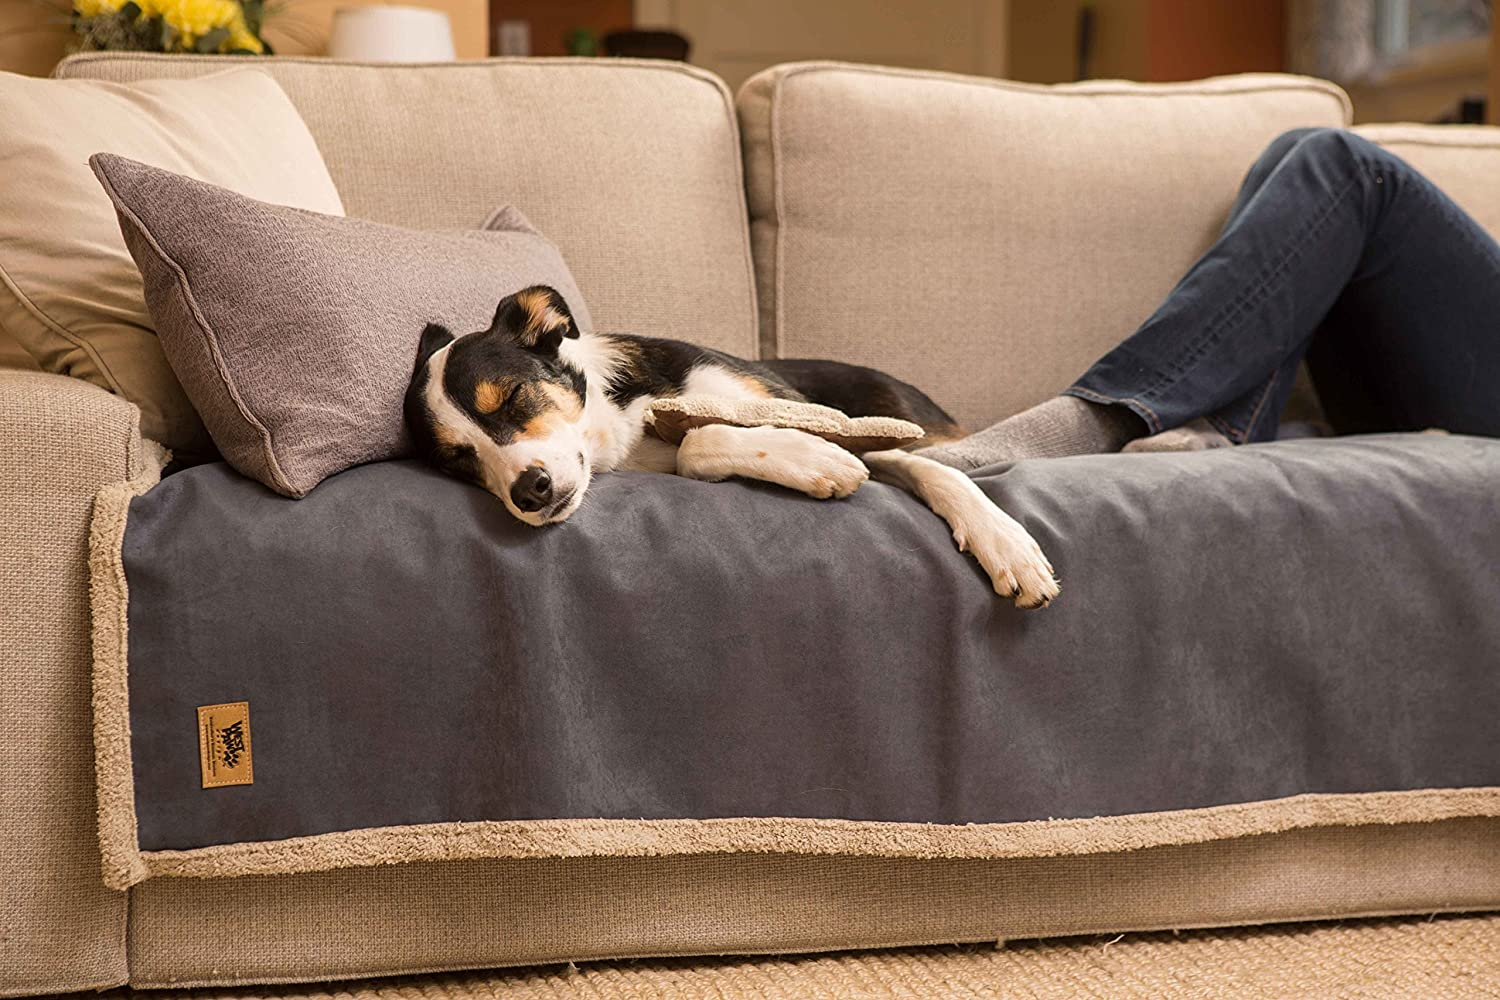 Amazon.com : West Paw Big Sky Dog Blanket And Throw, Faux Suede/Silky Soft  Fleece Pet Throw Blanket For Couch, Furniture Chair And Bed, Jade, ...